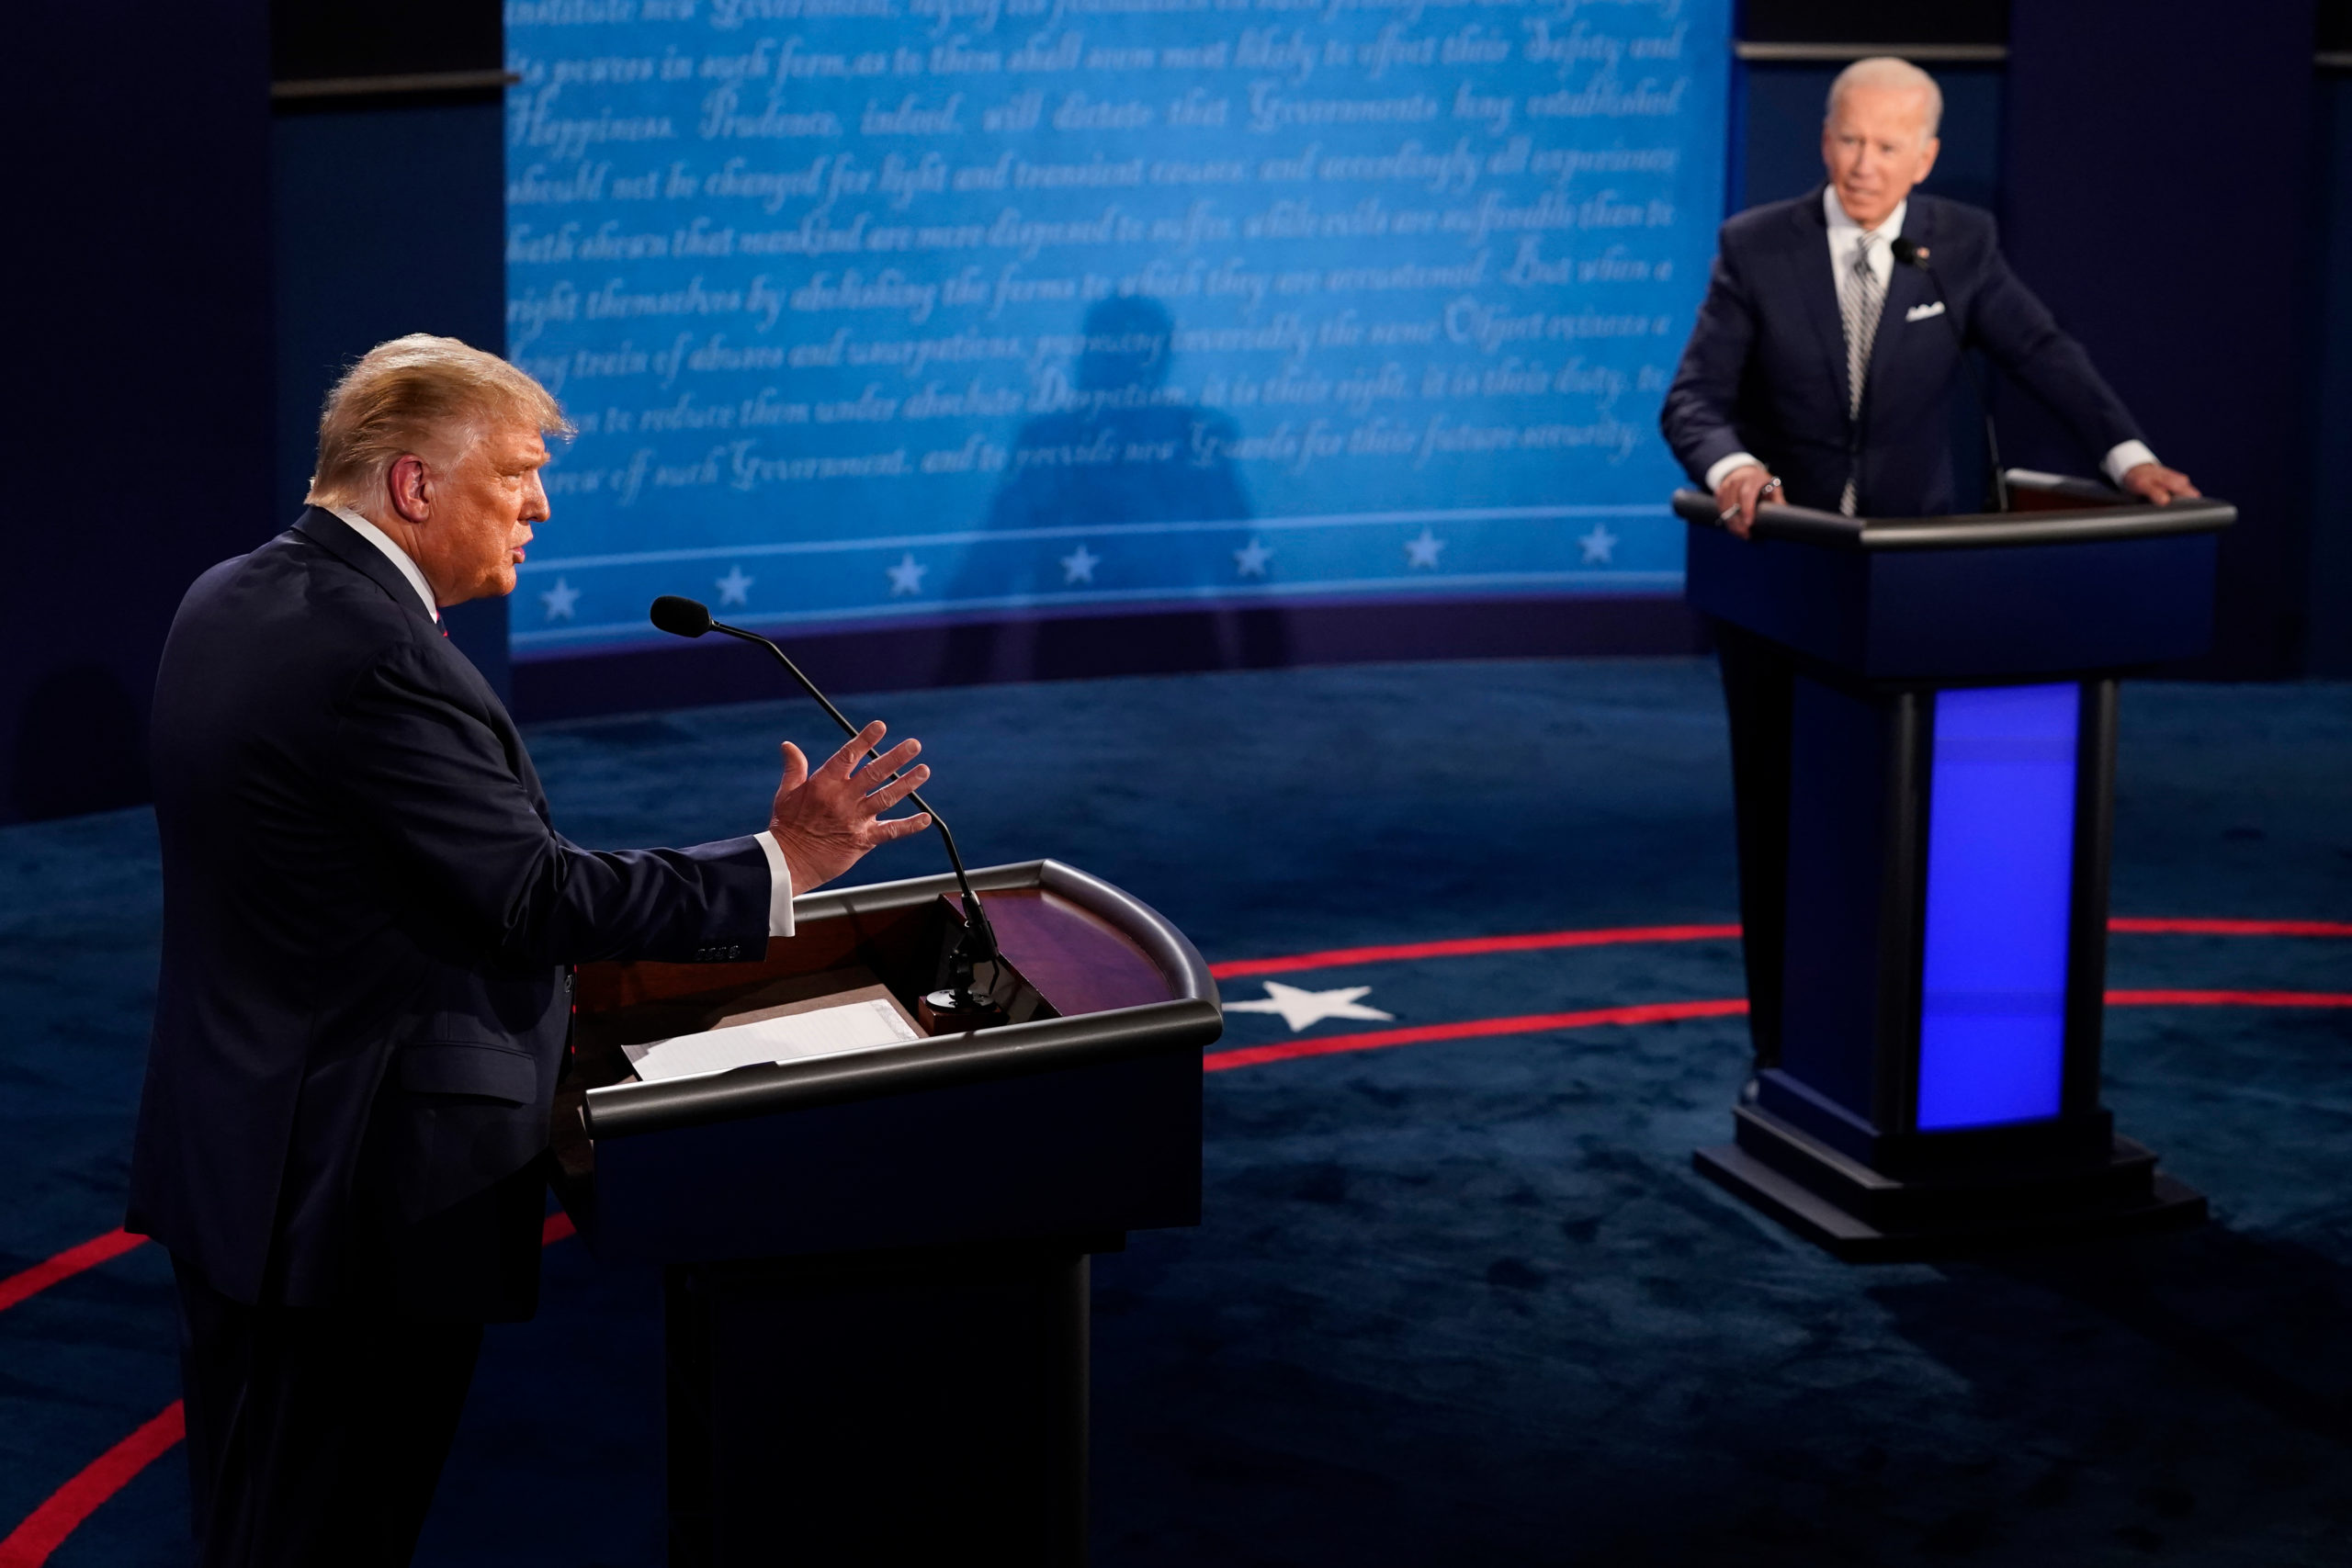 President Donald Trump speaks during the first presidential debate against Democratic presidential nominee Joe Biden on Sept. 29 in Cleveland, Ohio. (Morry Gash-Pool/Getty Images)